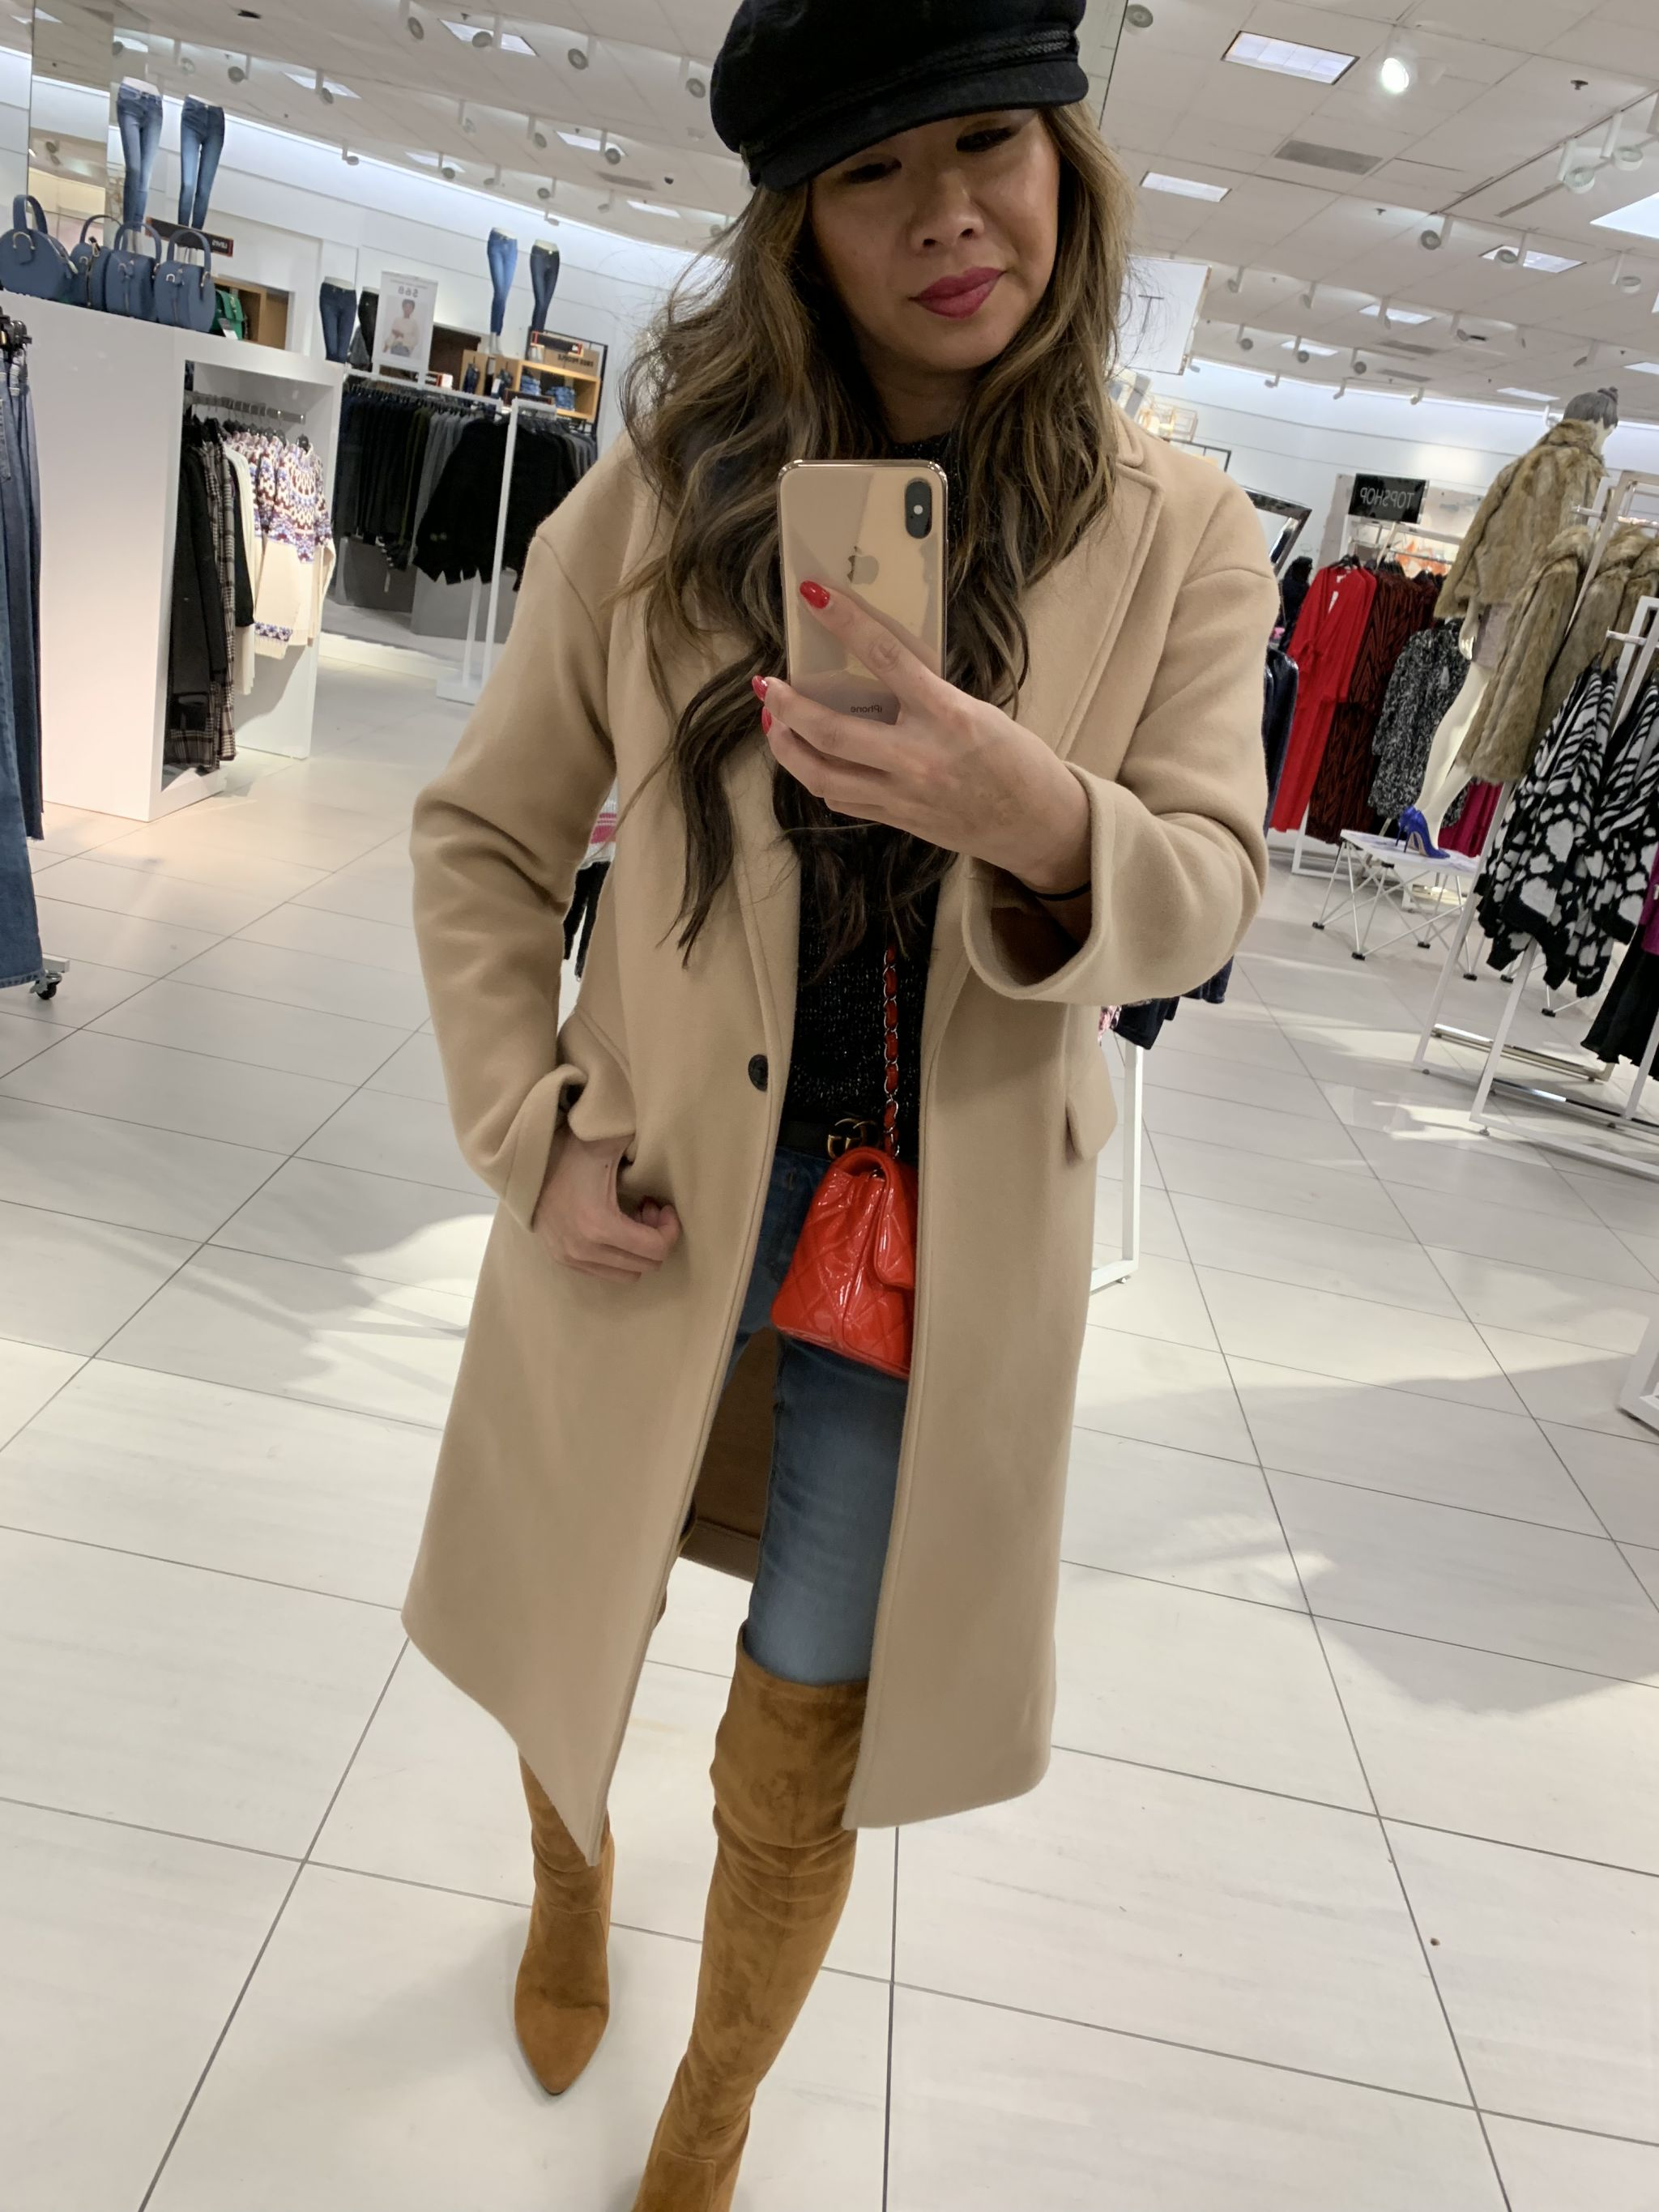 Topshop camel coat, nordstrom camel coat, best coat for winter, nordstrom coats, jennifer worman,